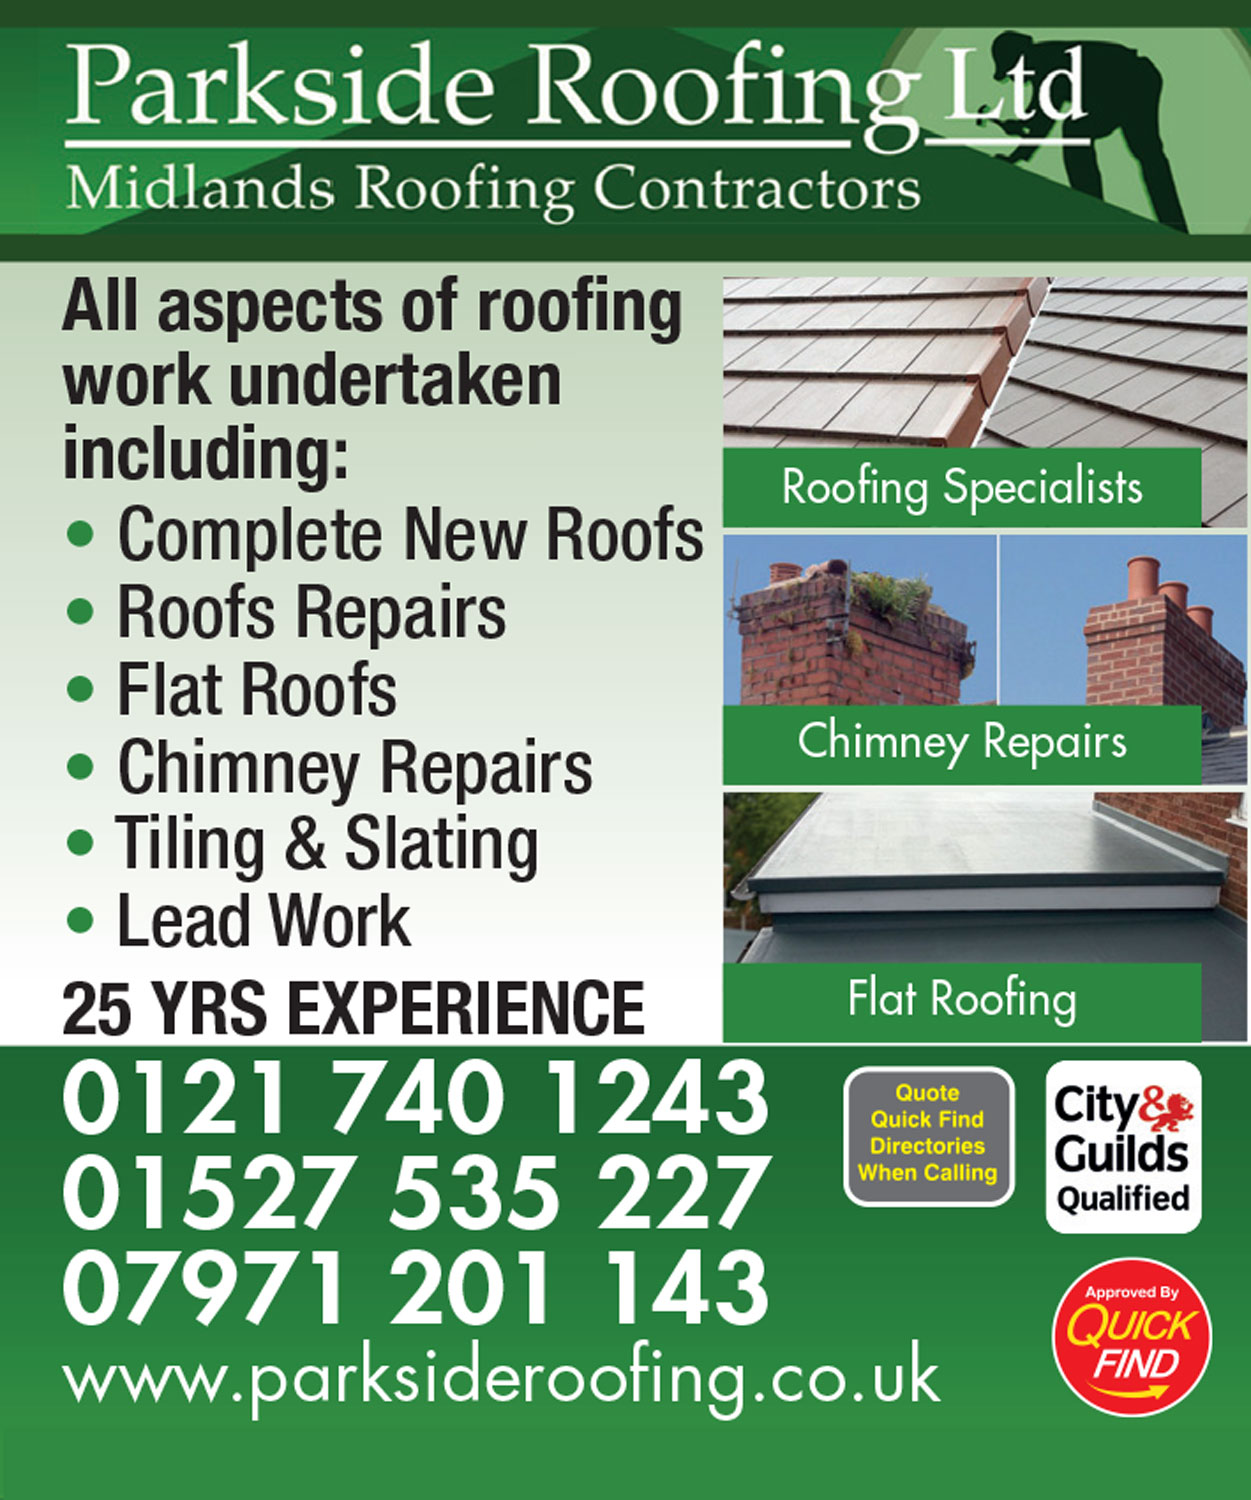 Parkside Roofing